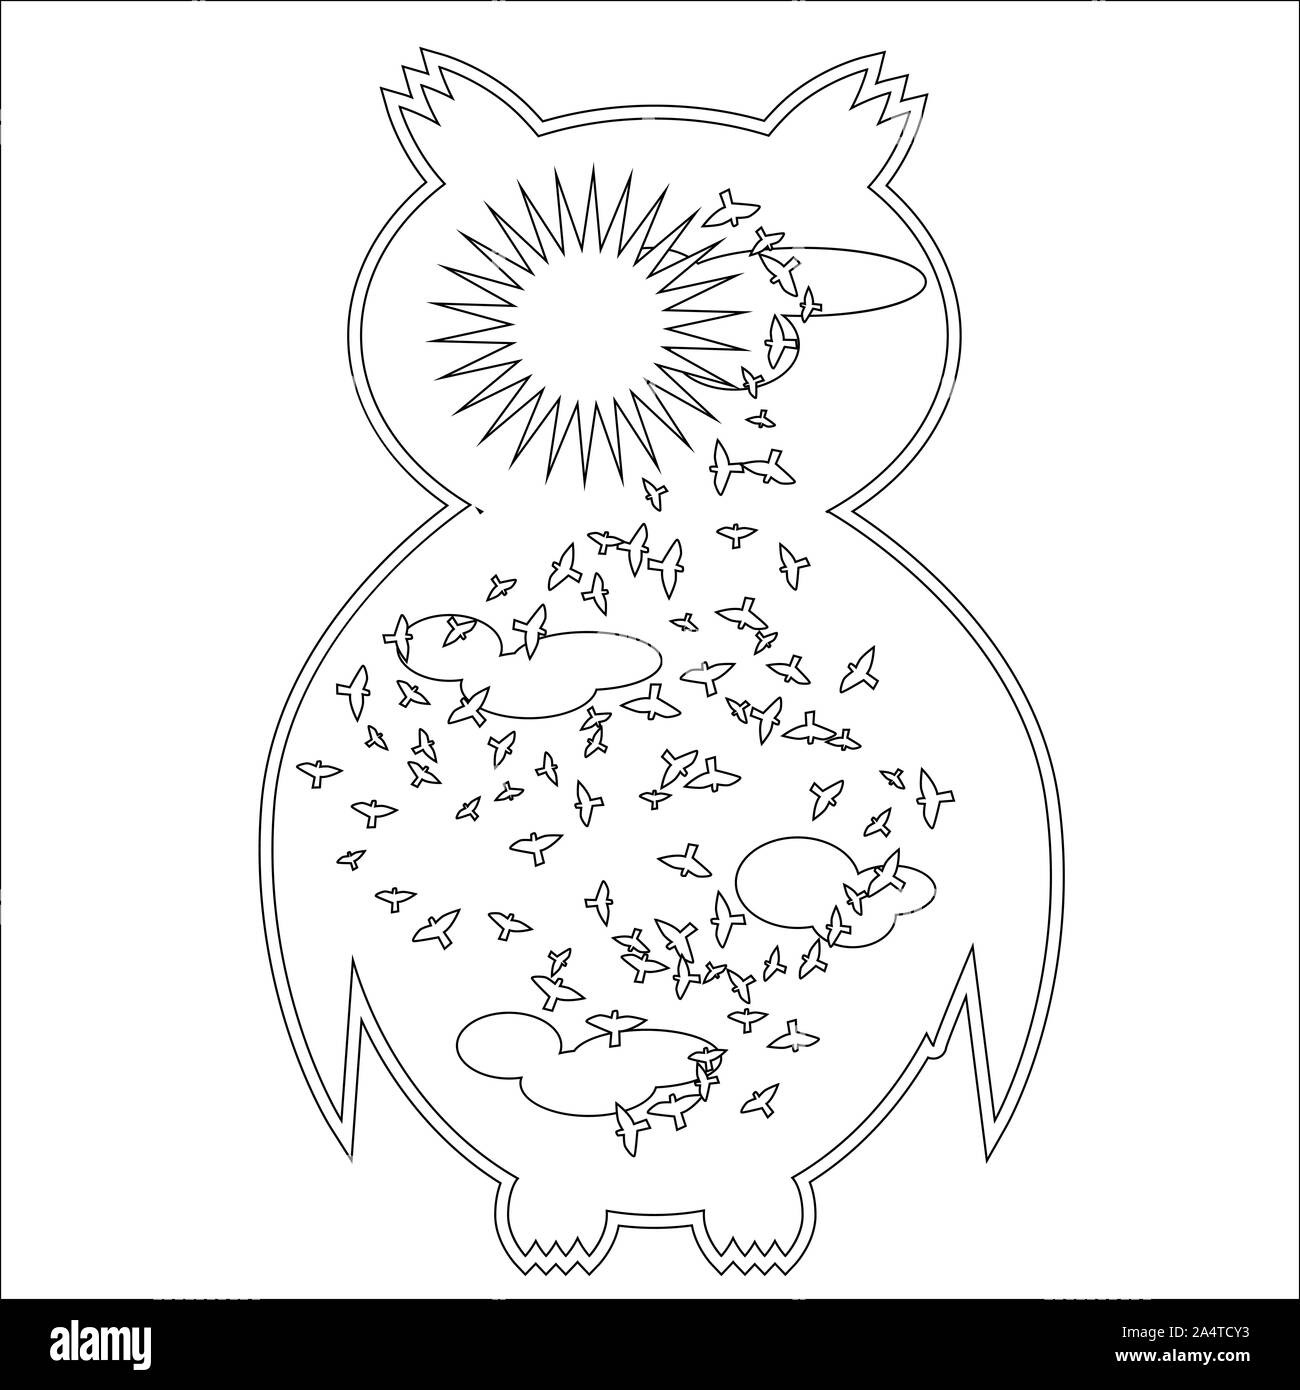 Coloring Page With Symbol Moon Sun Owl Coloring Book For Adult Antistress Album Wall Mural Art Tattoo Black And White Outline Illustration Stock Photo Alamy